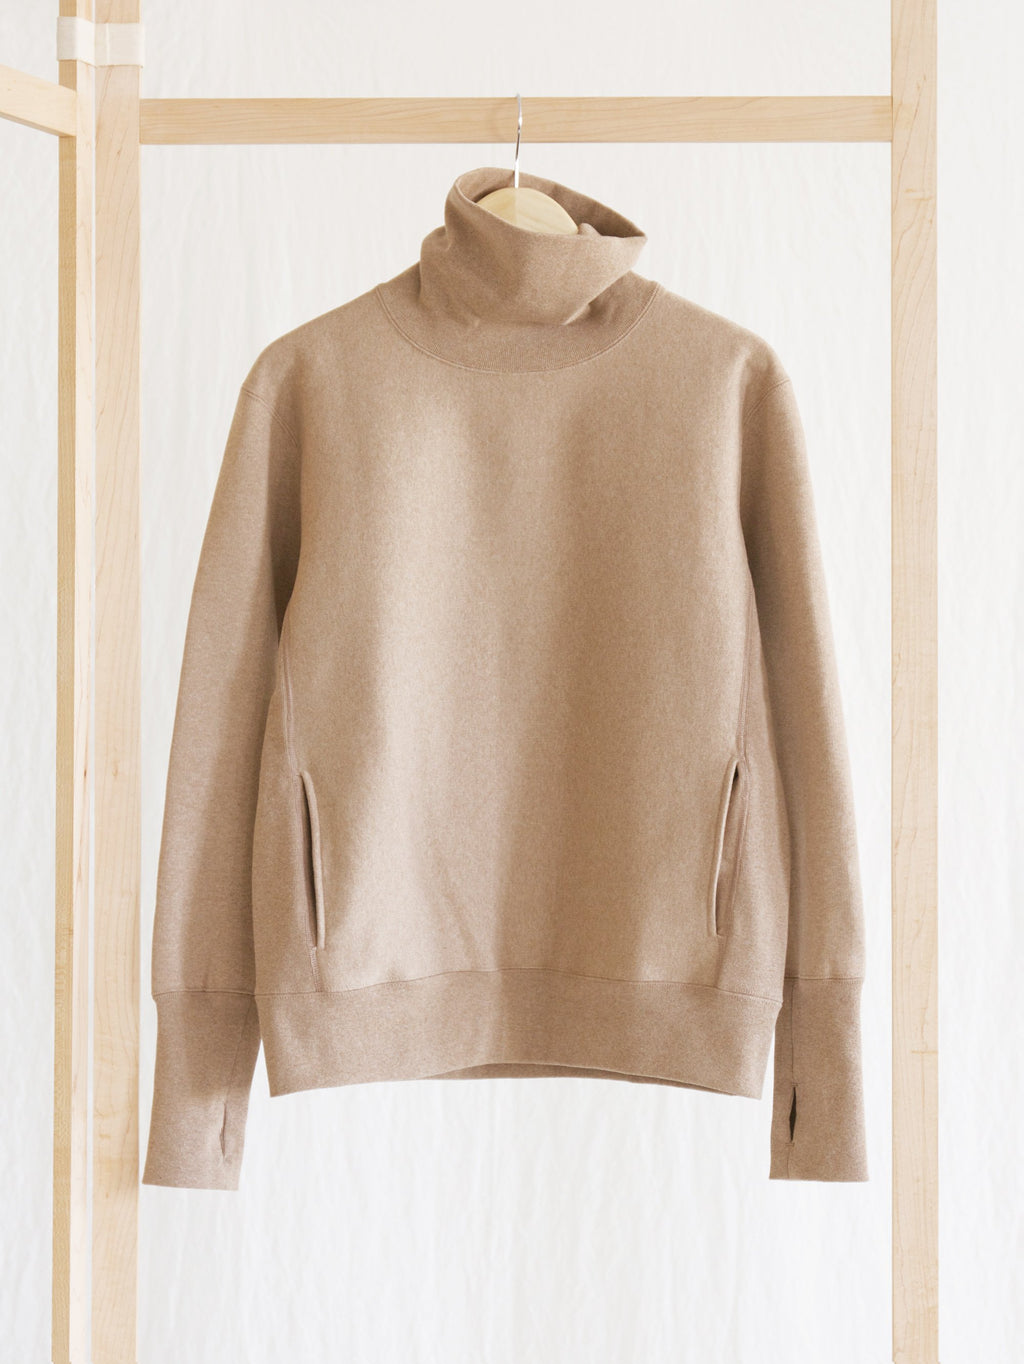 Namu Shop - A Vontade BD Turtleneck Sweater in Amber Mix